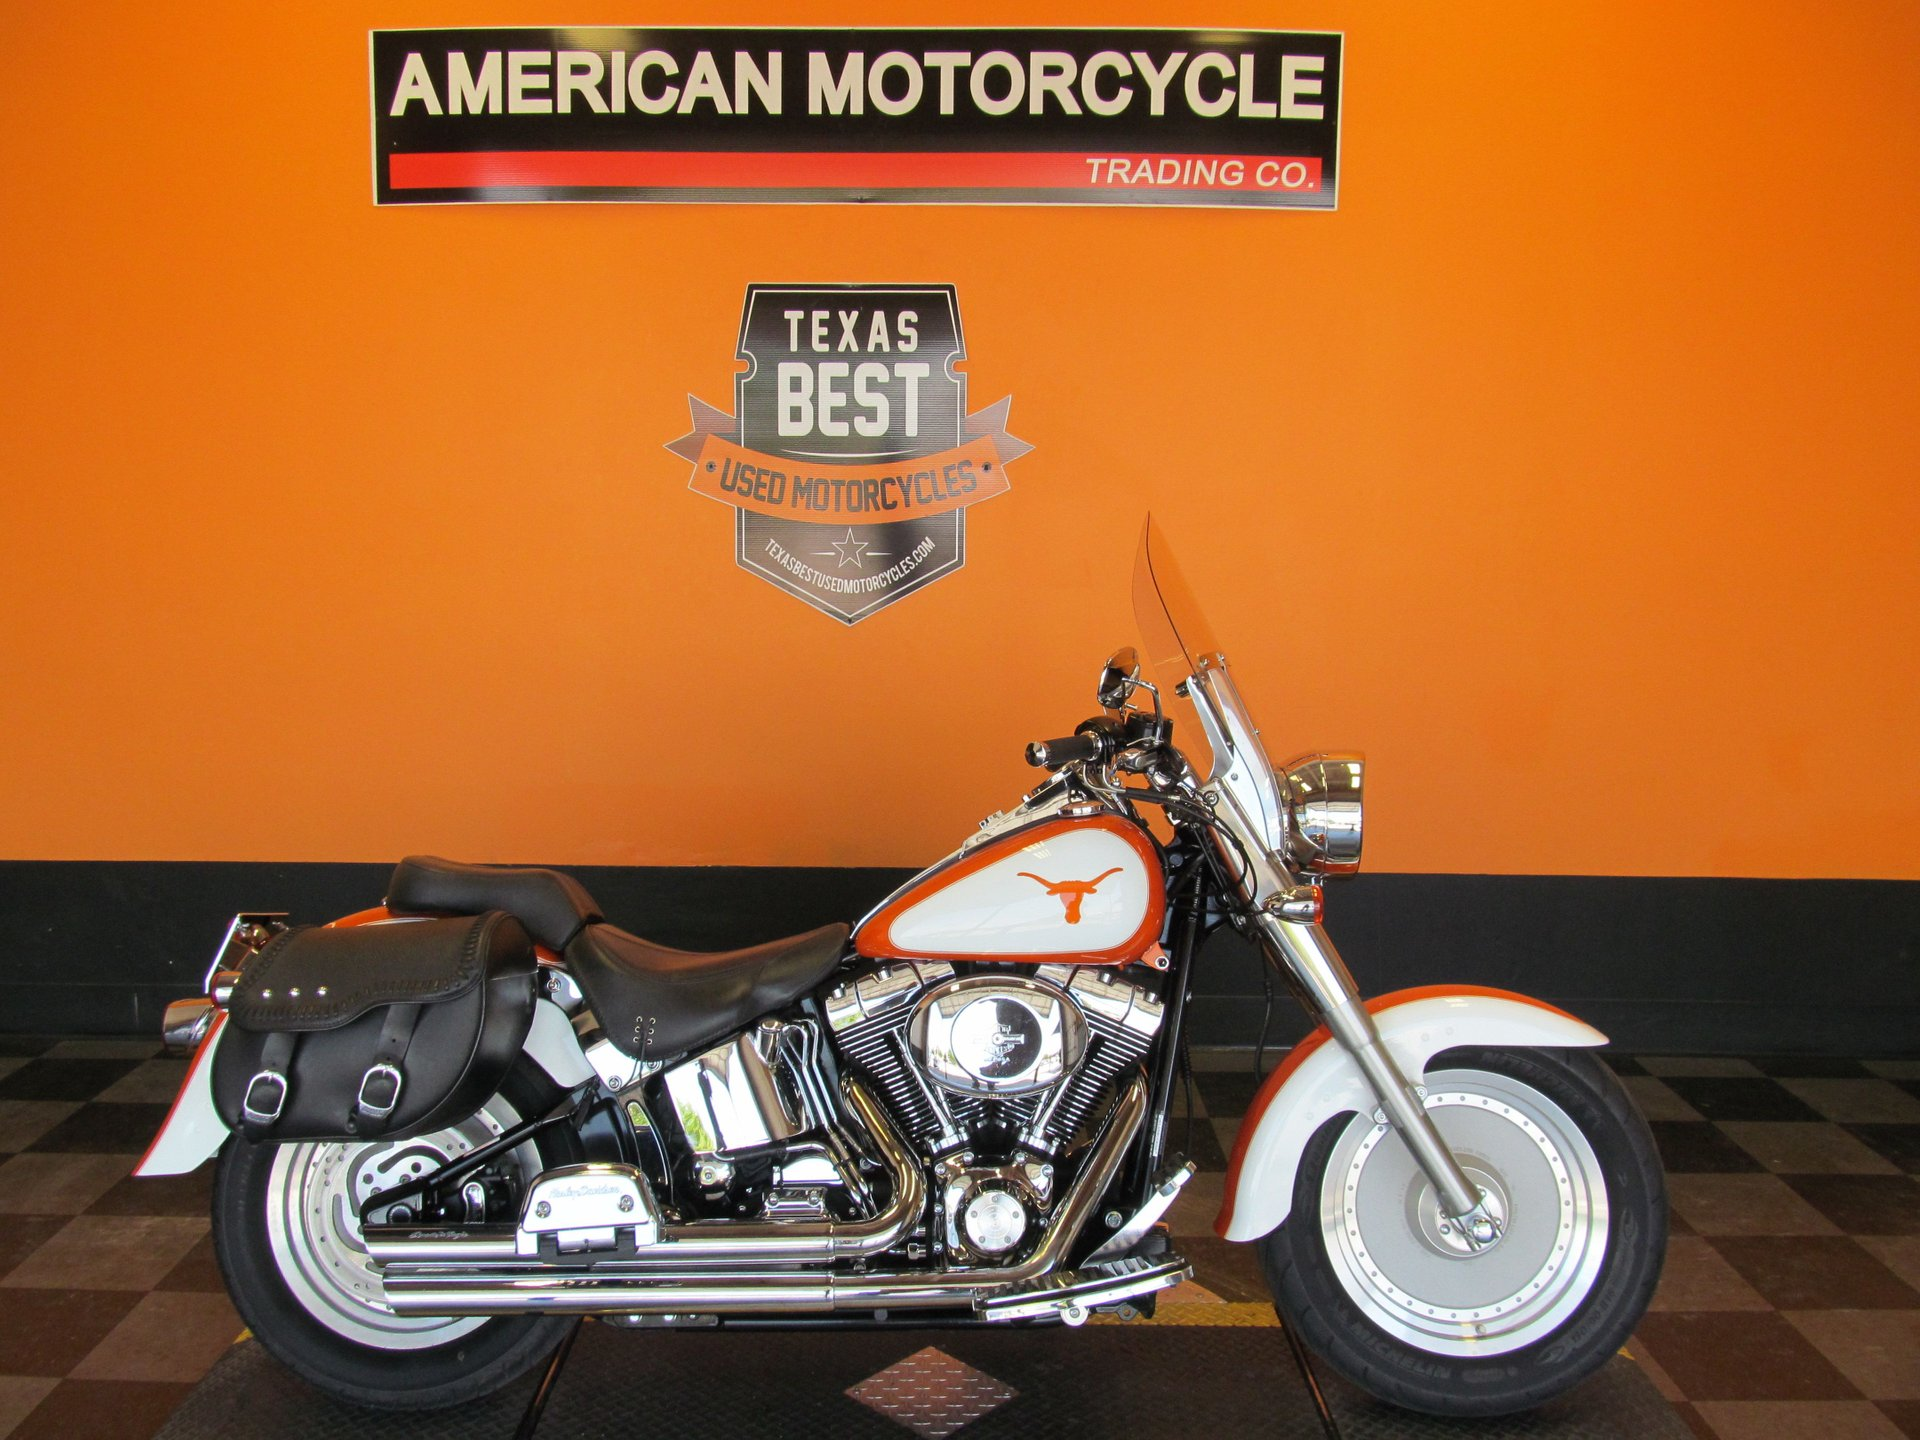 2005 harley davidson softail fat boy flstfi